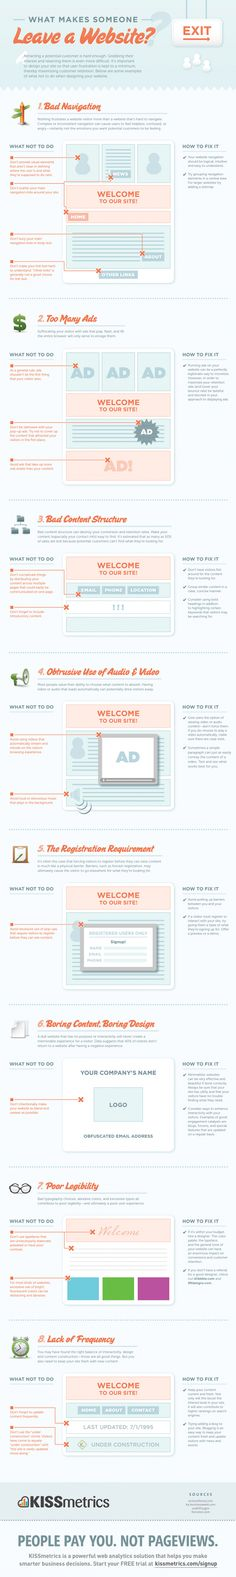 8 Deadly Sins of Site Design Infographic